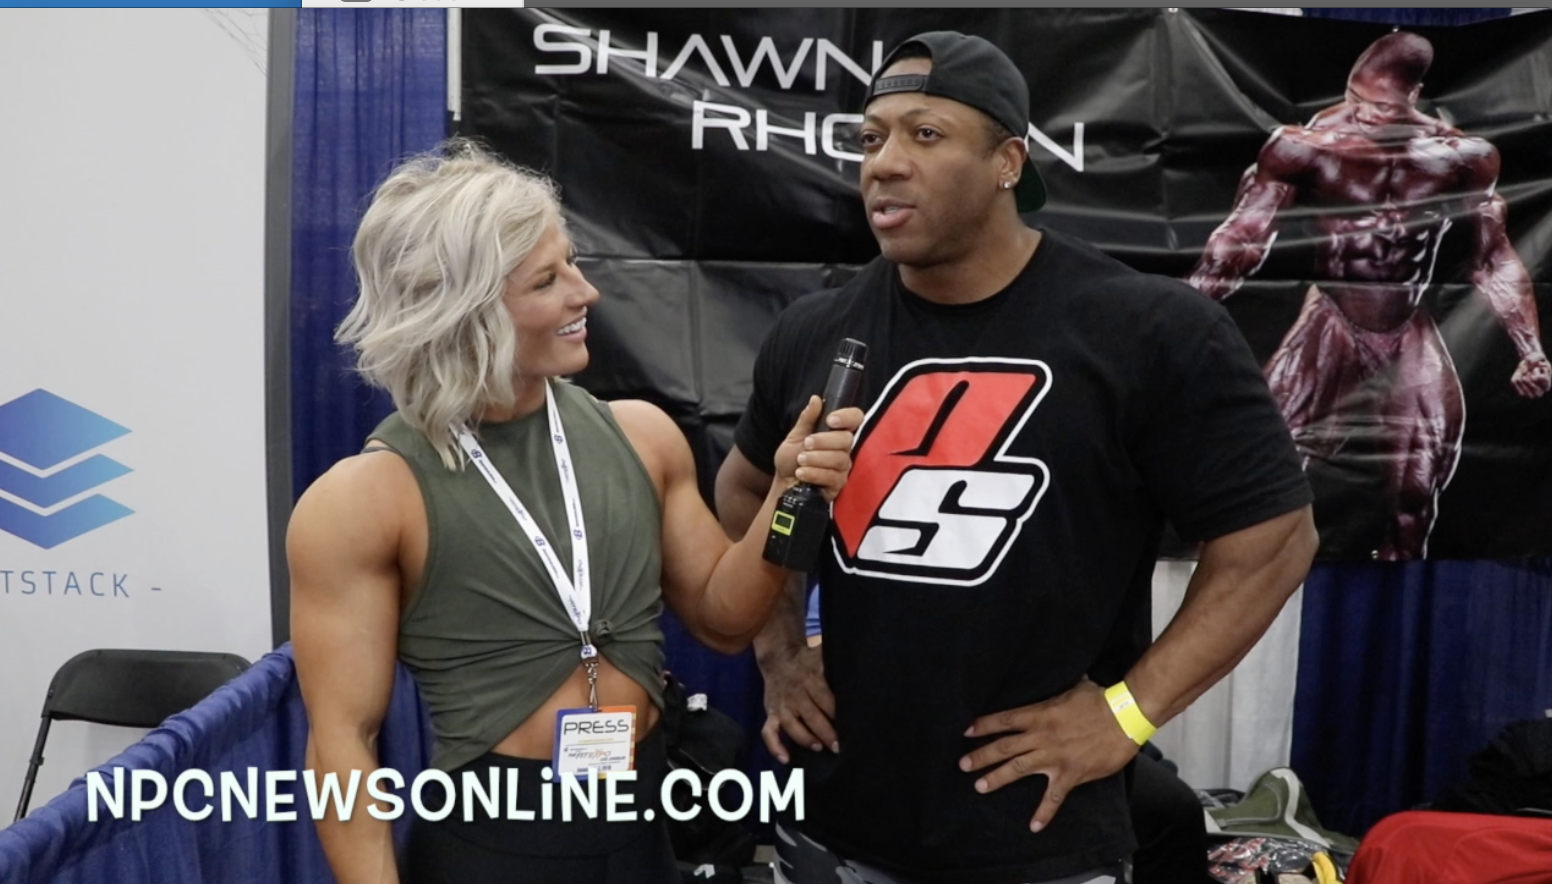 Interview With IFBB Bodybuilding Pro Shawn Rhoden From The 2018 LA Fit Expo